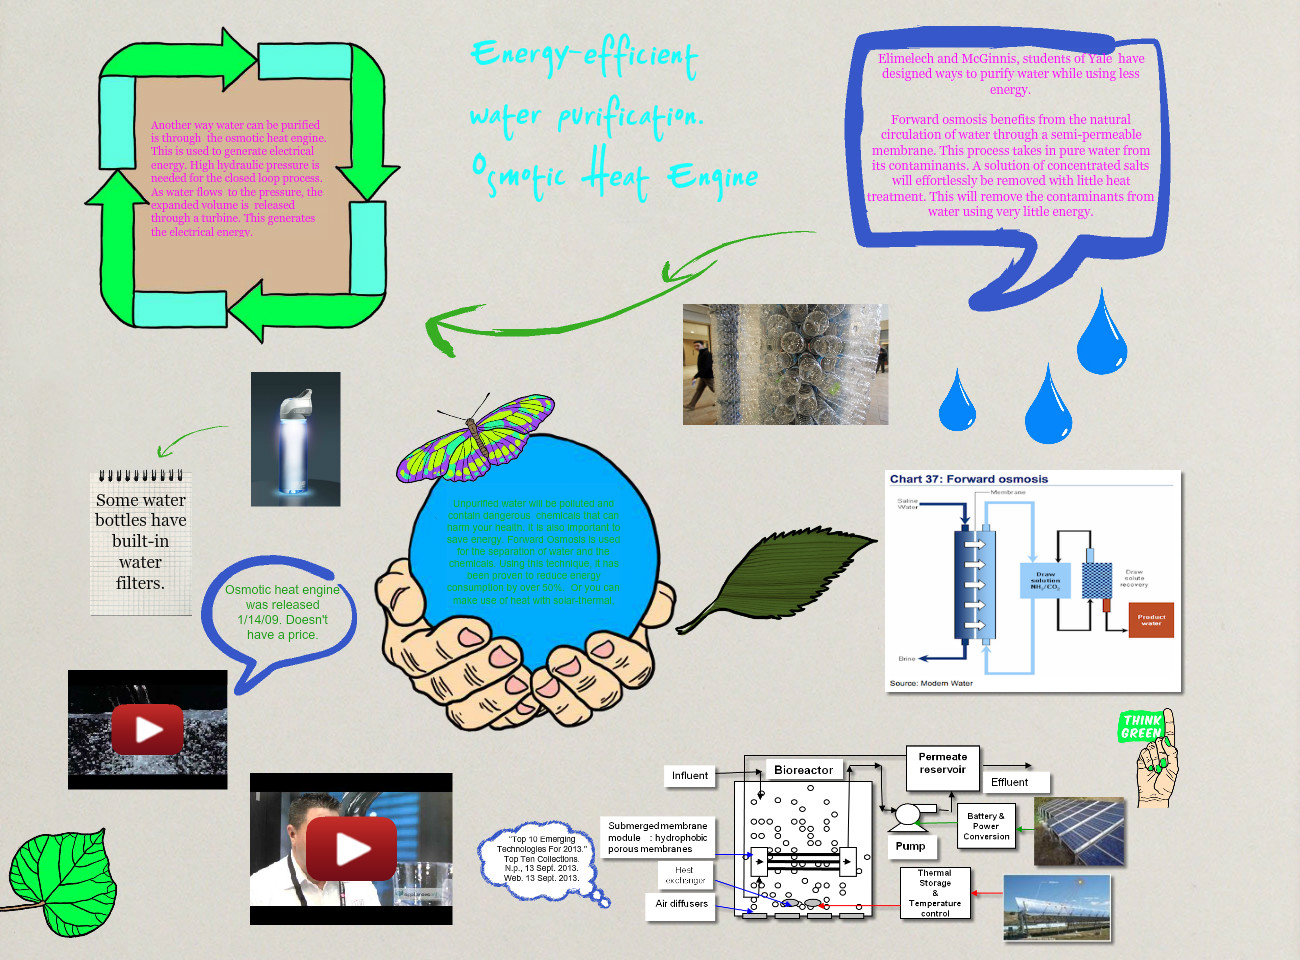 Energy- efficient water purification